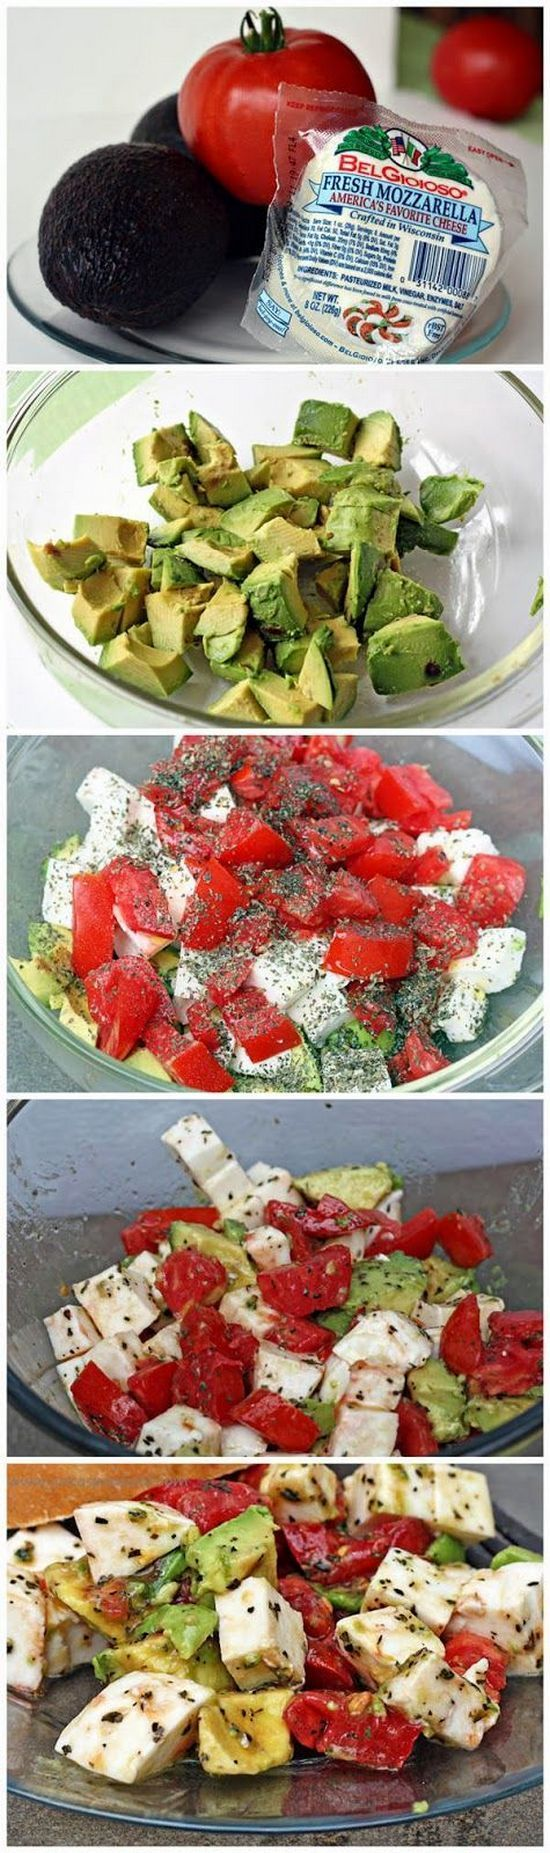 Avocado / Tomato /Mozzarella Salad Recipe | CookJino